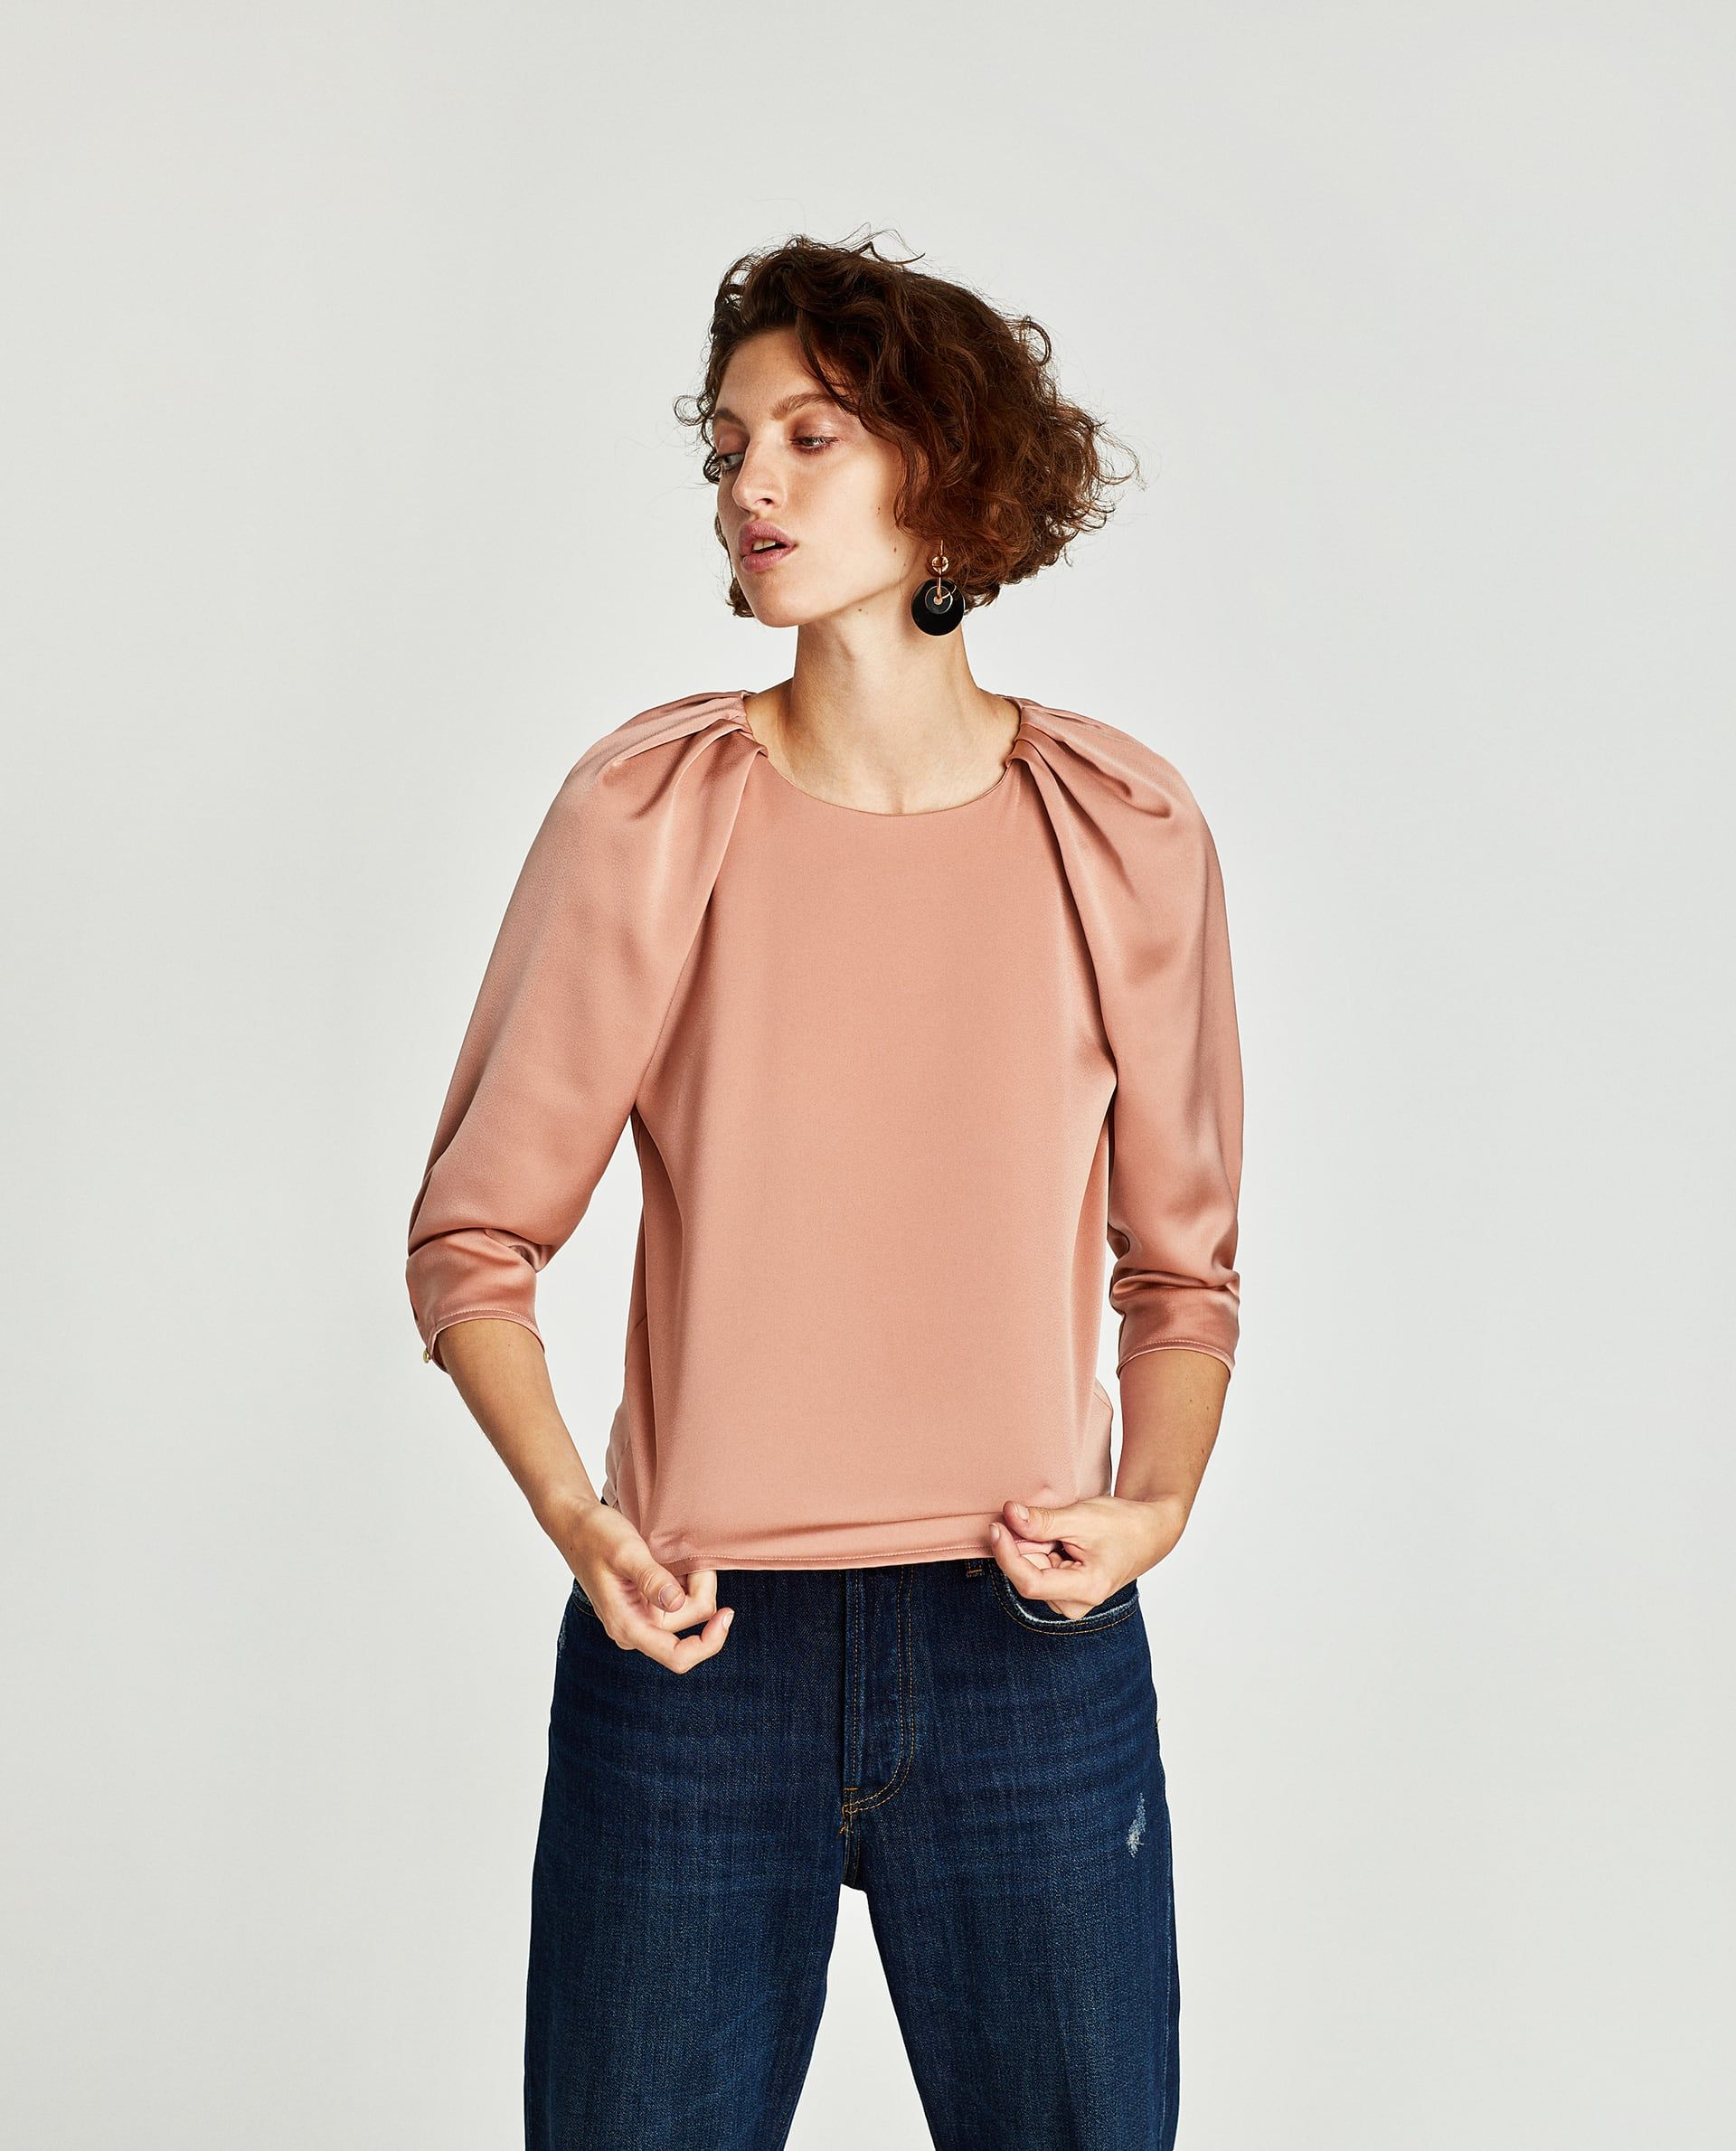 cba0146d Image 4 of SATIN BLOUSE WITH SHOULDER PLEATS from Zara | VMM styling ...